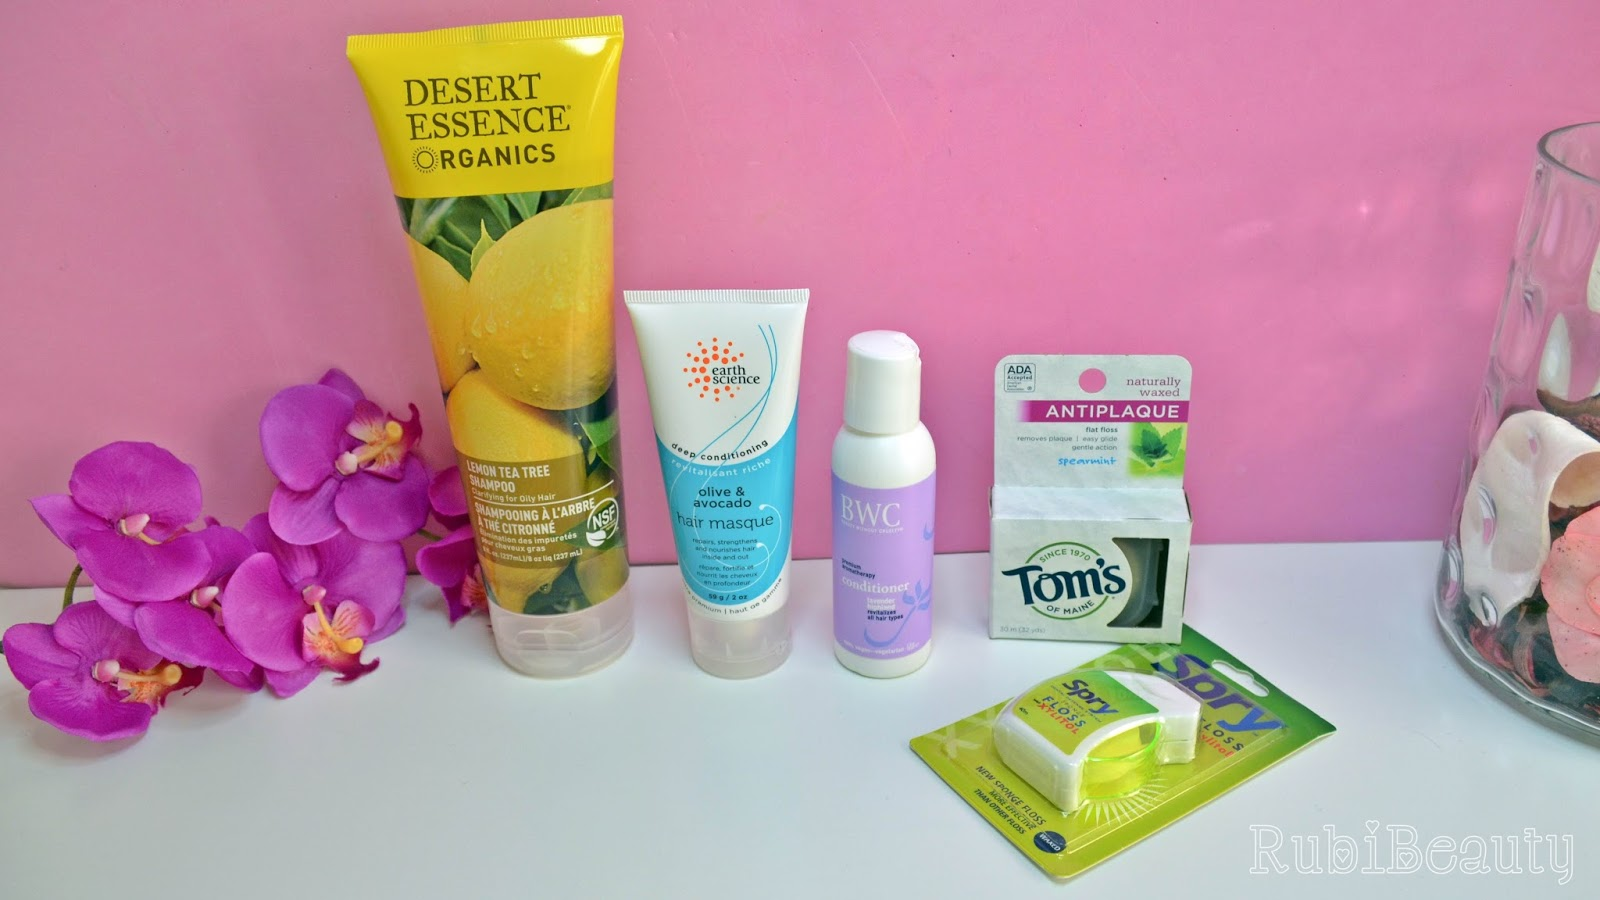 iherb haul review impresiones opinion compras desert essence earth science BWC